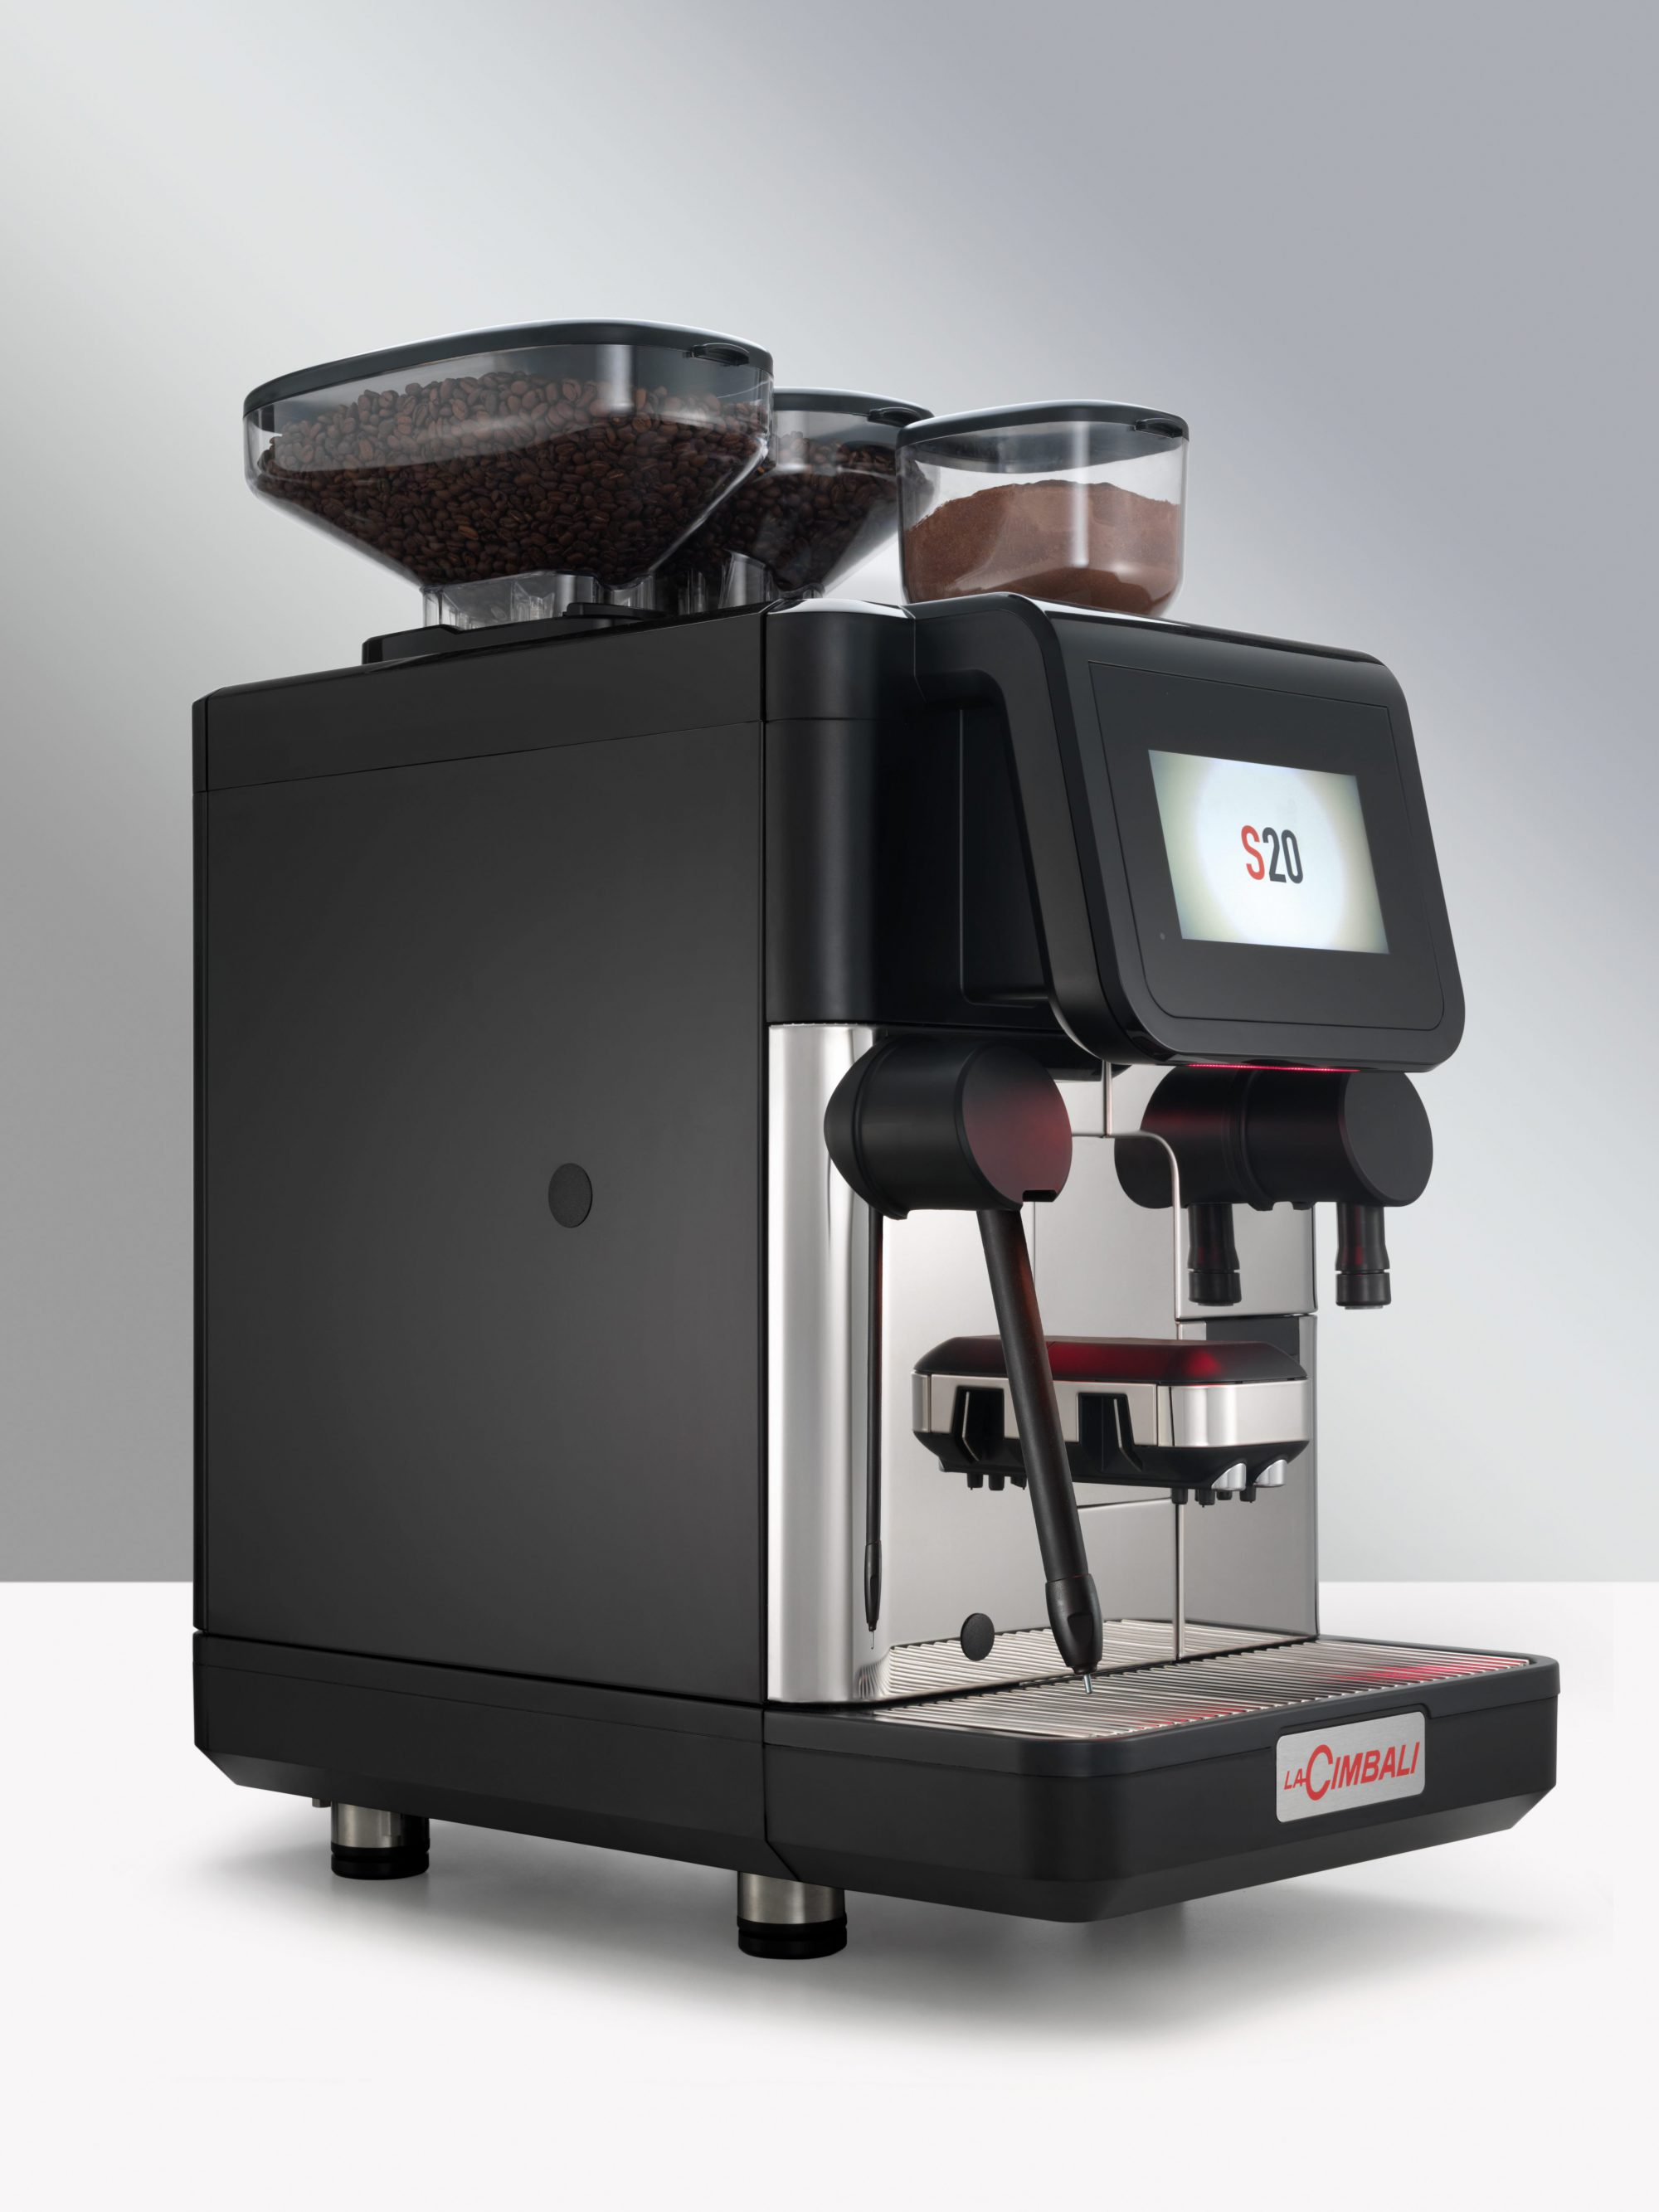 Two S20s will be o demo at the European Coffee Expo